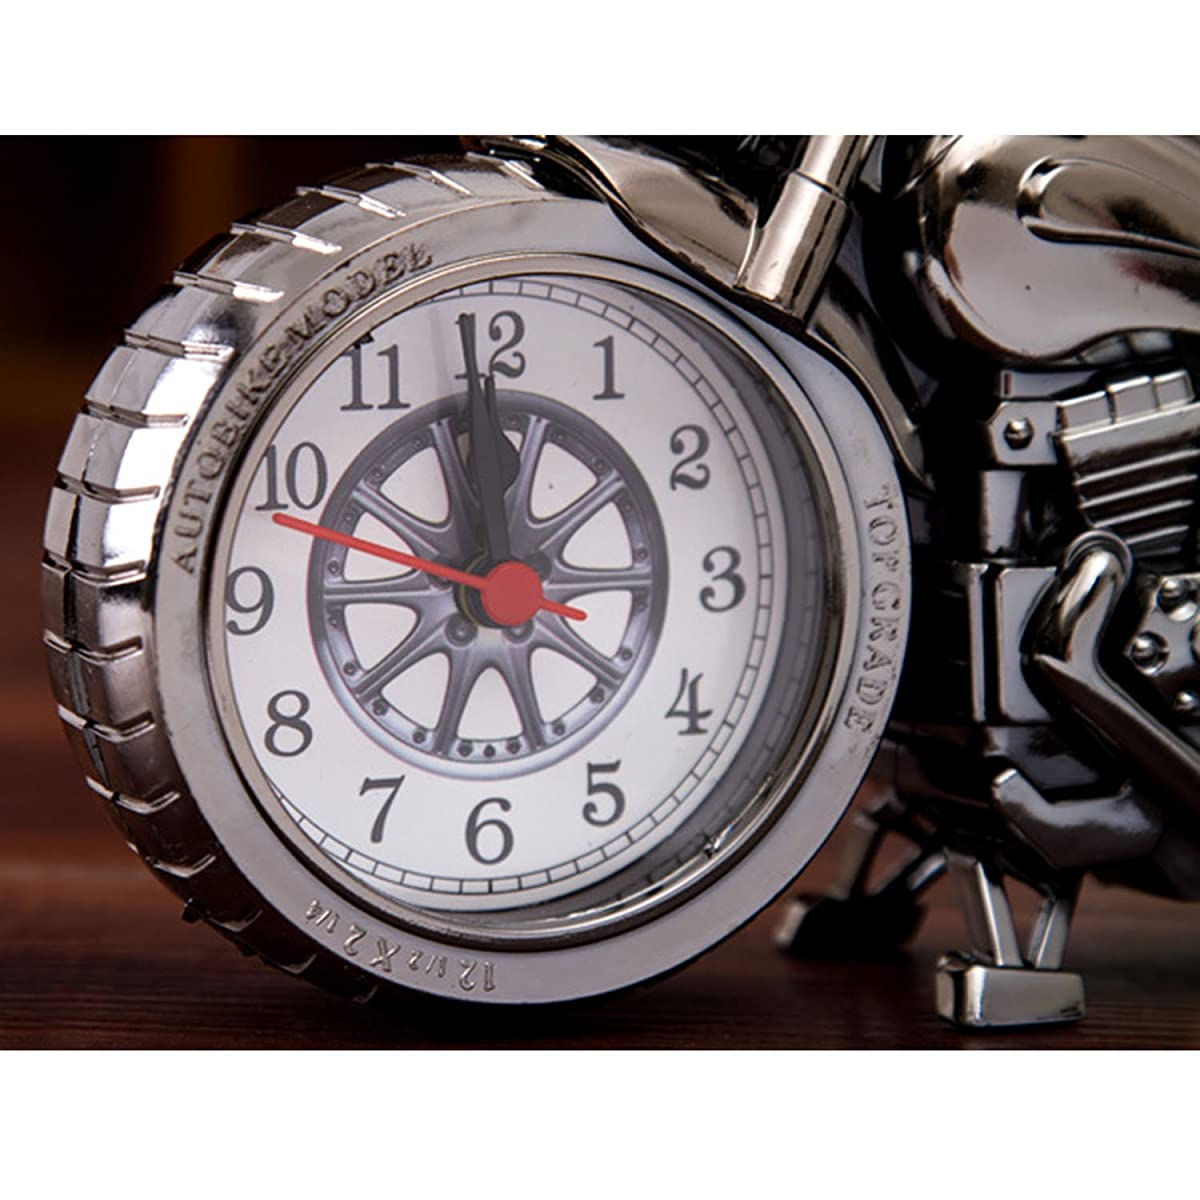 Vintage Retro Motorcycle Style Students Alarm Clock Table Desk Time Clock Cool Motorbike Model Home Office Shelf Decoration Novelty Birthday Holiday Children Adults Boys Gift Brown